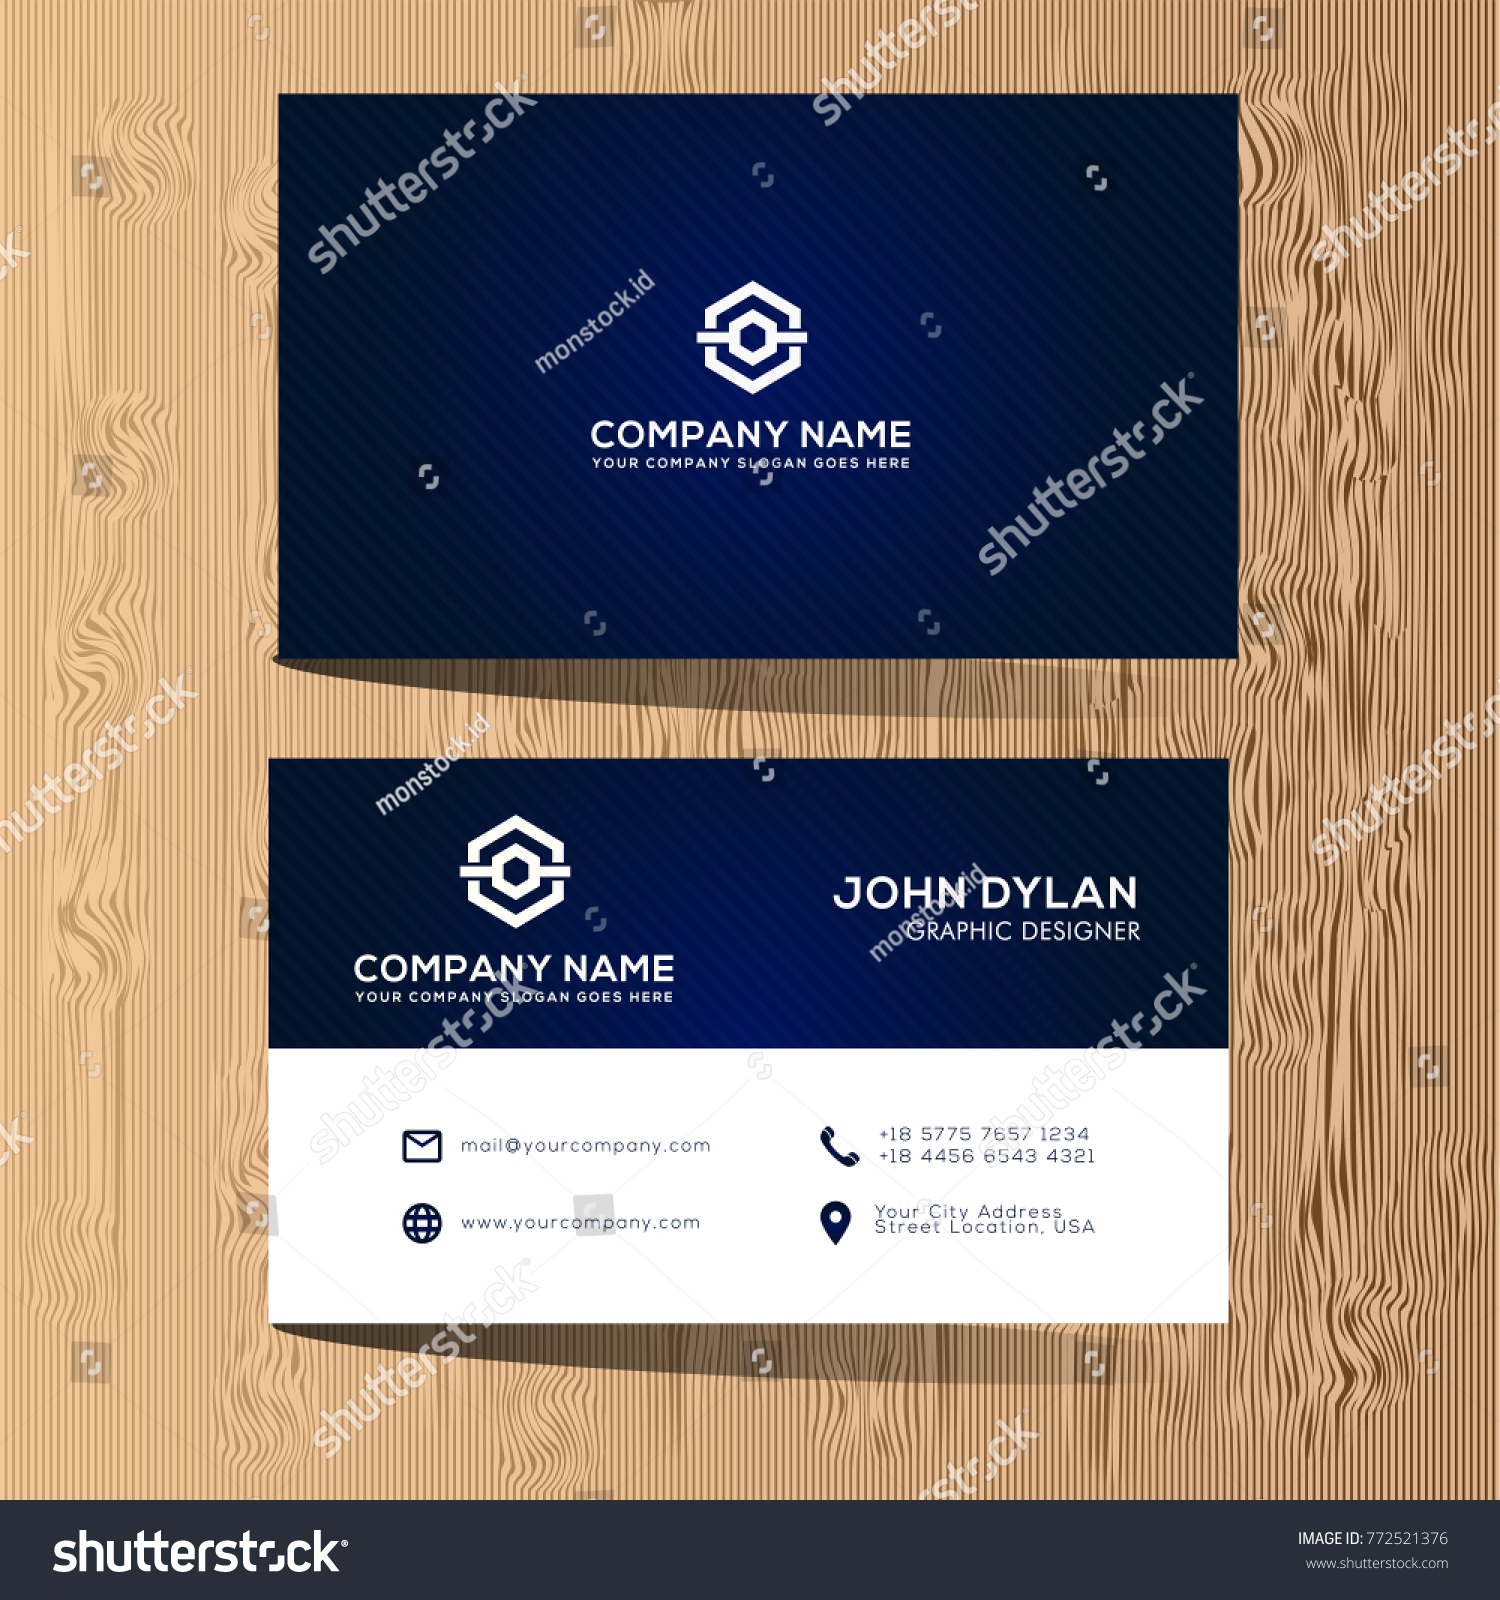 Modern business card templates professional sophisticated stock modern business card templates professional and sophisticated vector illustration eps 10 flashek Images